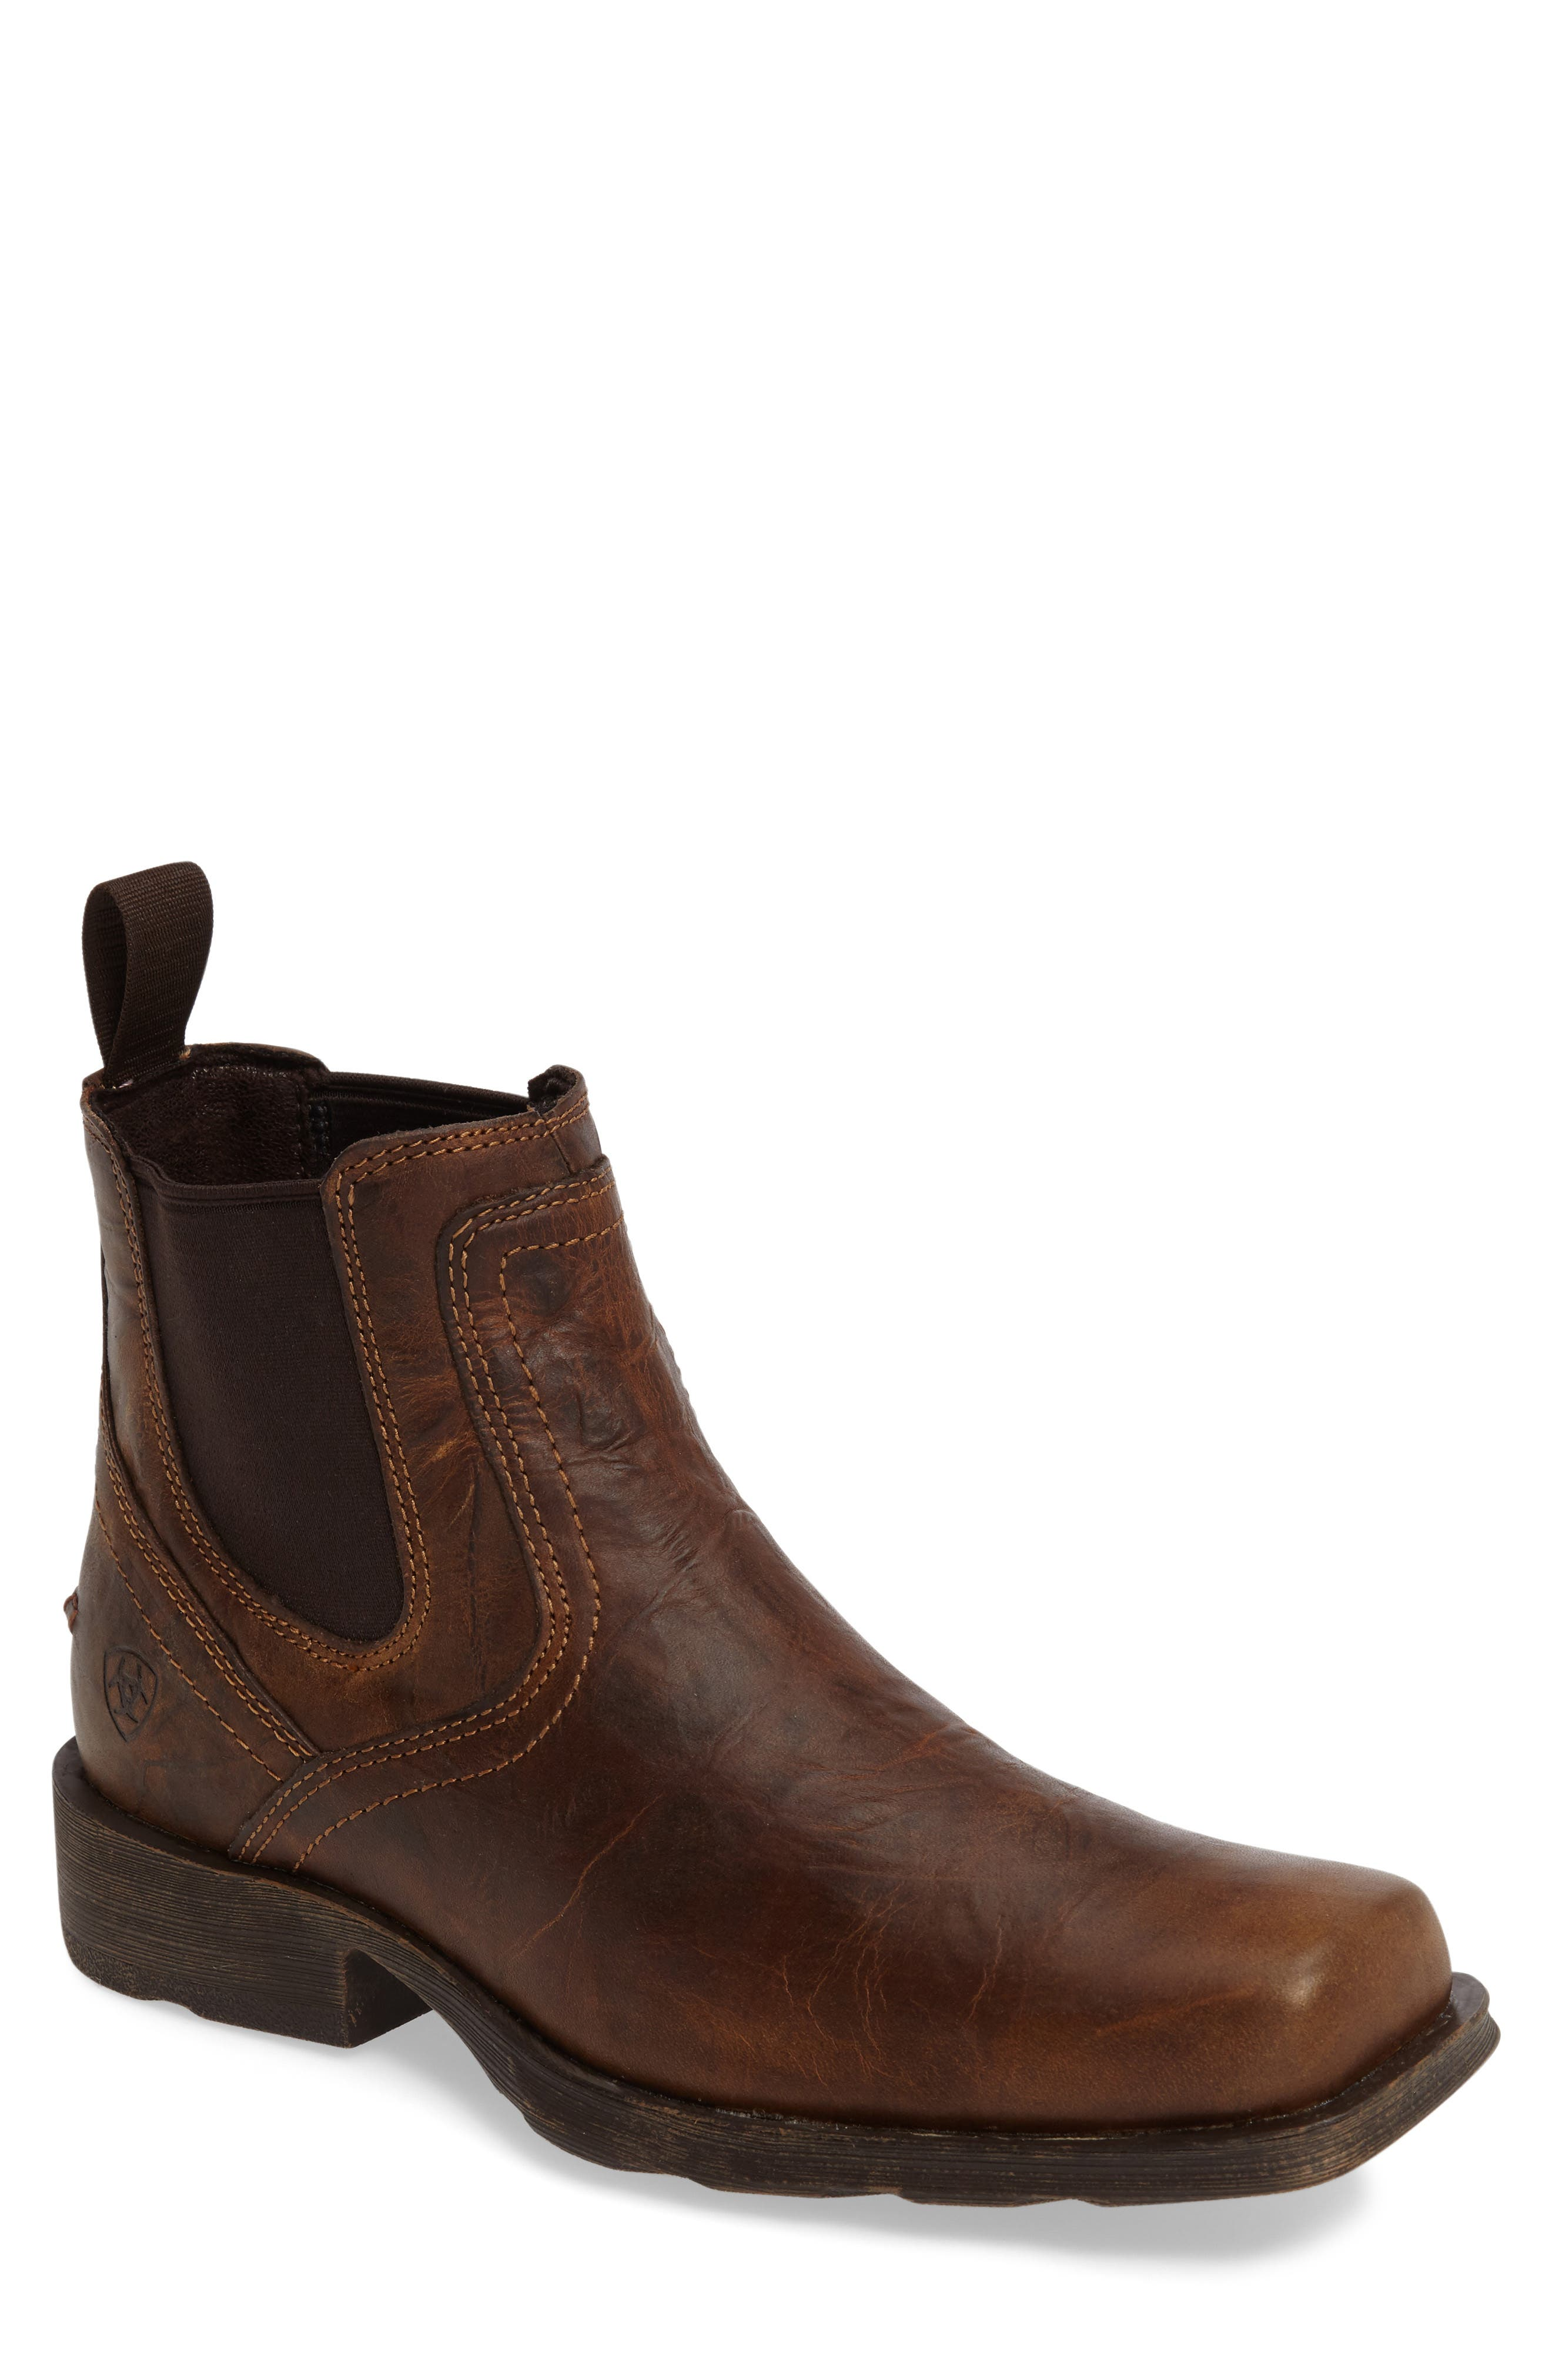 ARIAT Midtown Rambler Mid Chelsea Boot, Main, color, BARN BROWN